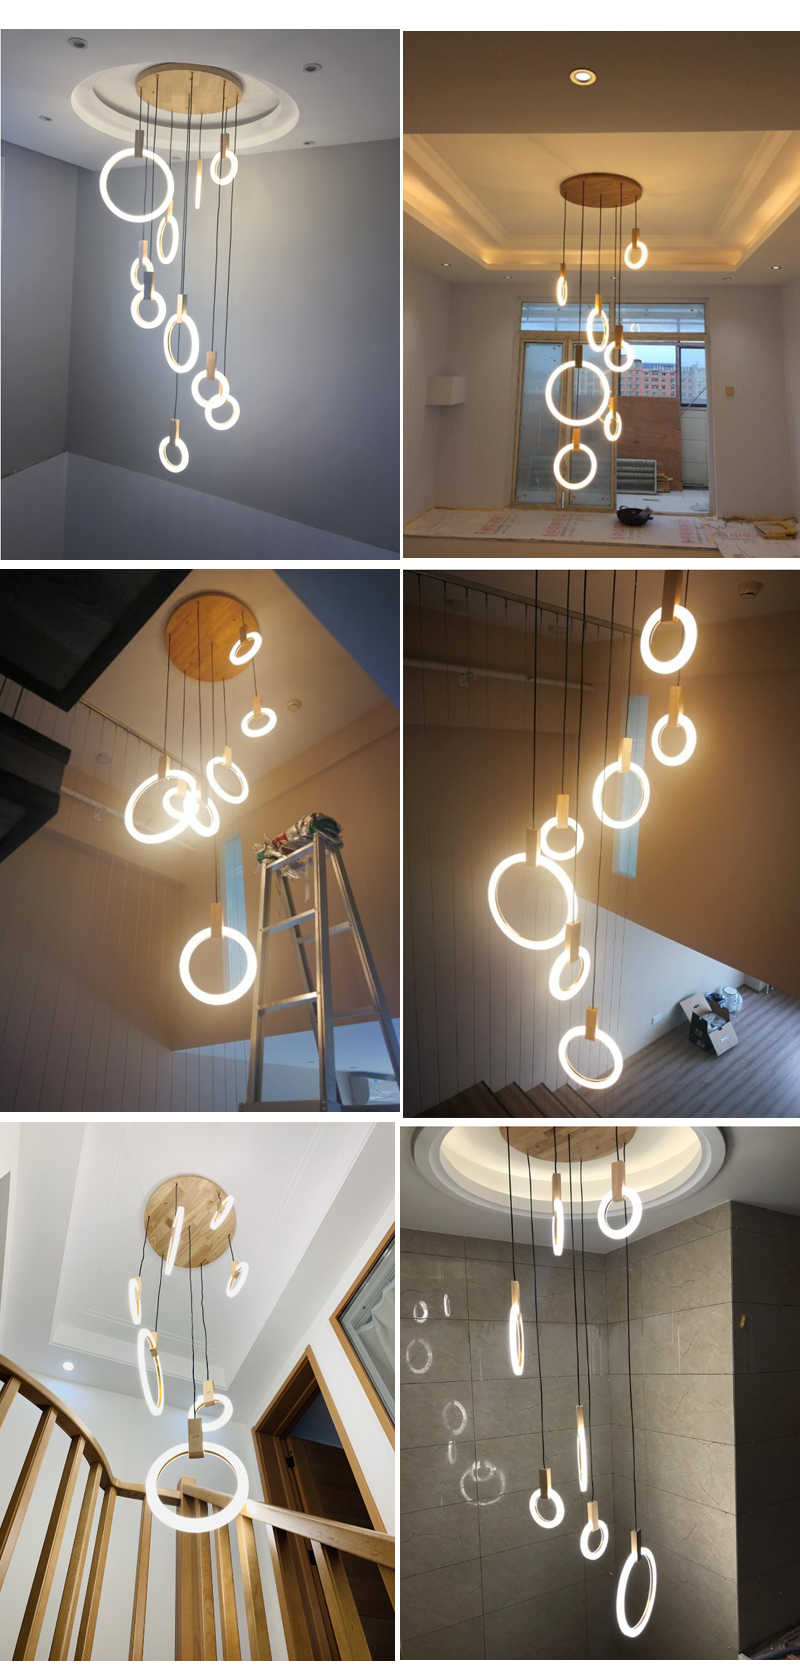 Modern Pendant Light Dining Room Lights Stair Lighting Fixture Wood Pendant Light Hanging Lamps For Staircase Pendant Lamp Led